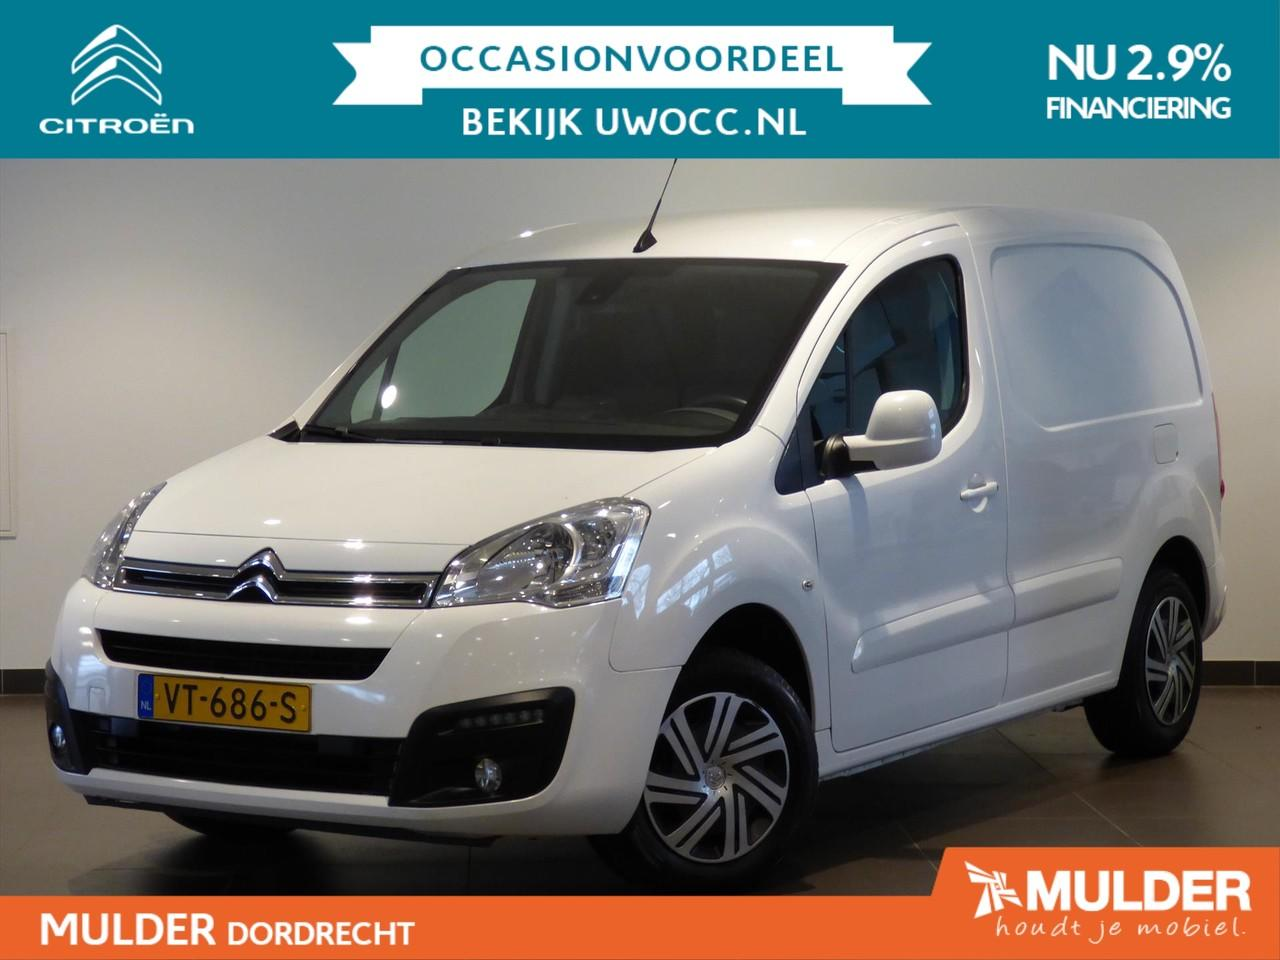 Citroën Berlingo Gb business 1.6 bluehdi 3p navi